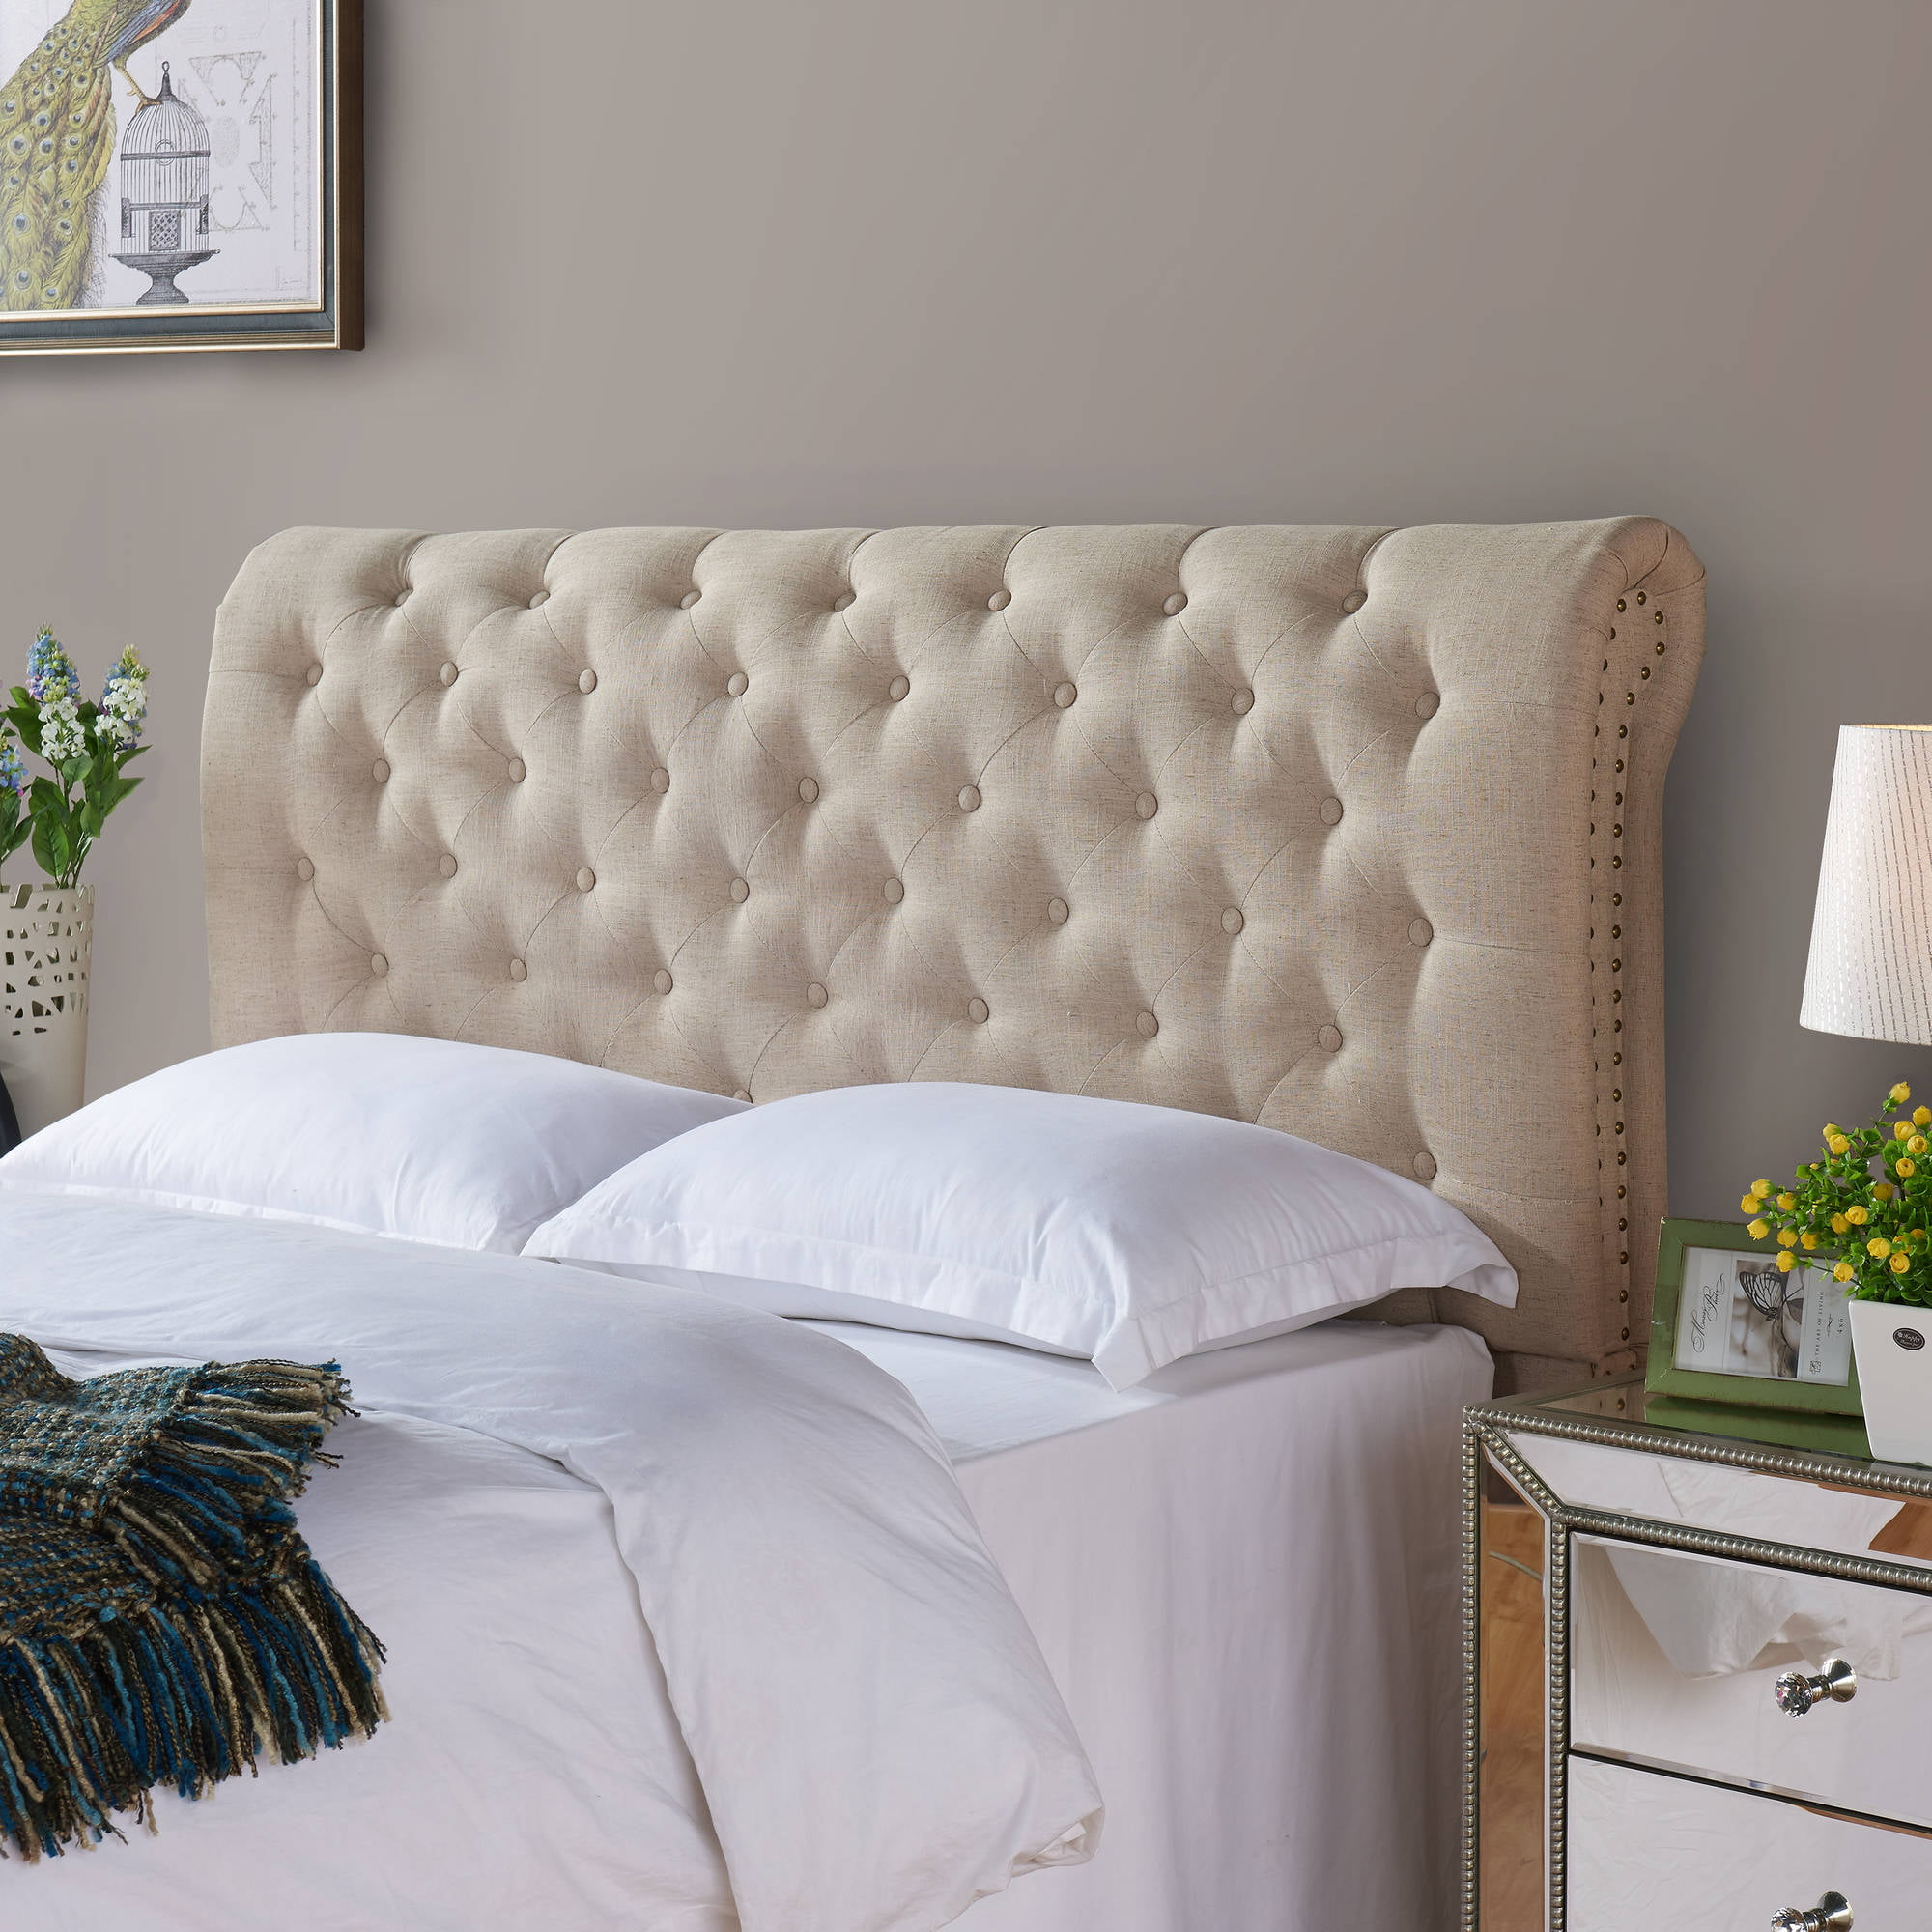 good looking better homes gardens. Better Homes and Gardens Rolled Tufted Headboard  Sand Multiple Sizes Walmart com